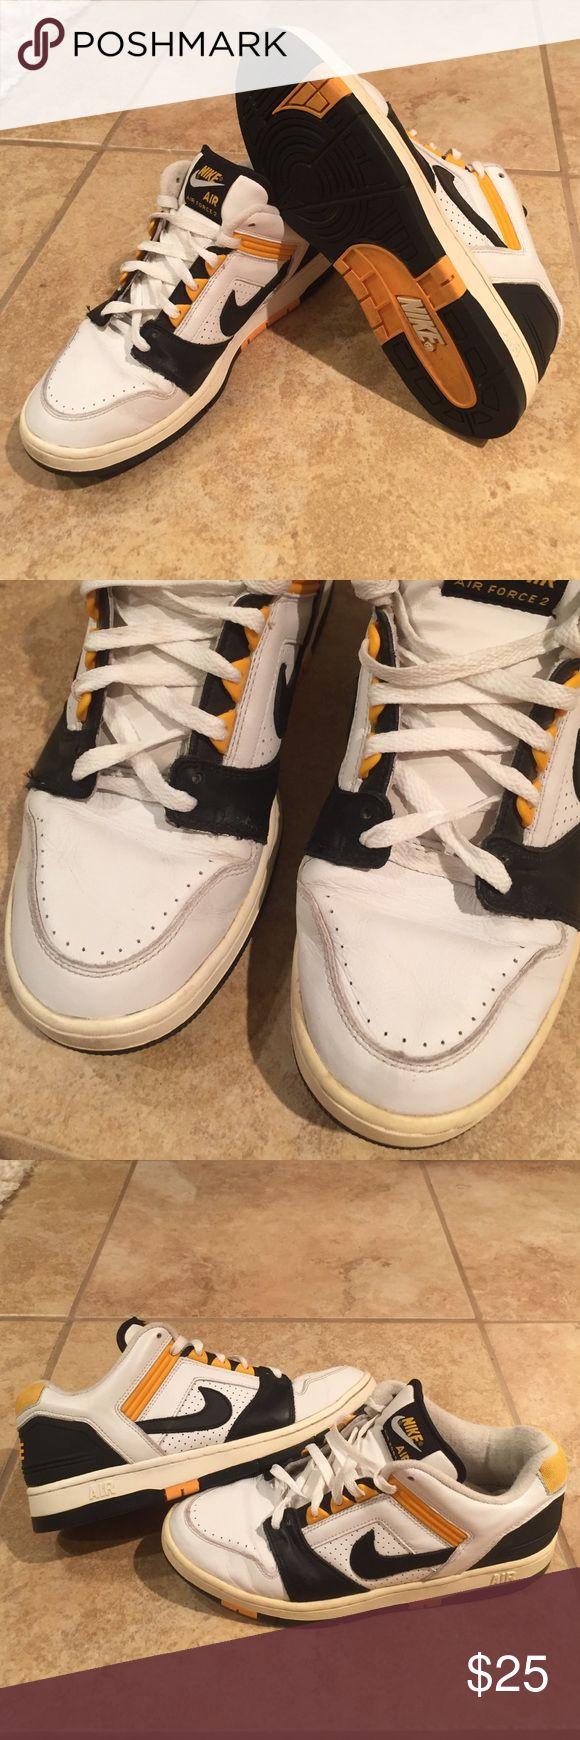 Nike Air Force 2 Lows [2003] (warn) Selling my holy grails, they've been with me for a while. Made in 2003, with natural yellowing on the midsole (all needs is some paint) and major creasing on the toe box. I cleaned these shoes thoroughly, all it needs is a little bit of loving and touch up lol                                            ** Does not have Original Box ** Nike Shoes Sneakers